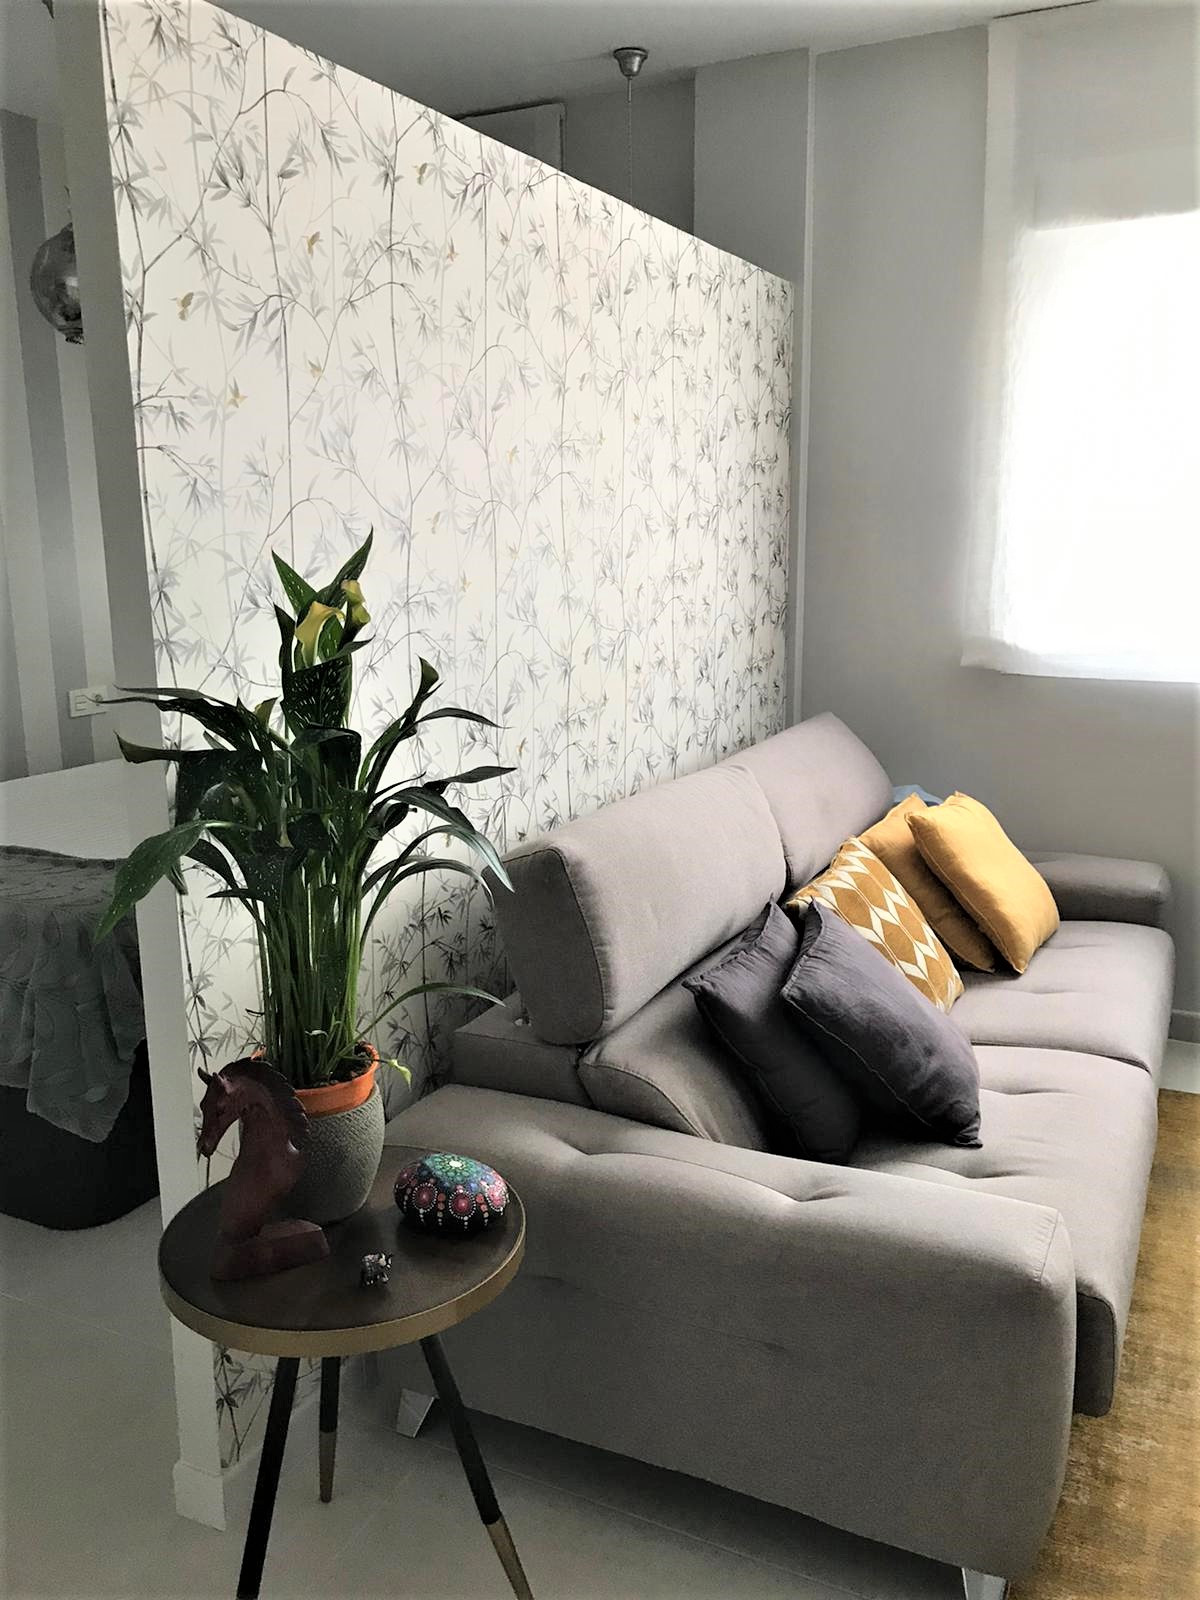 FURNISHED STUDIO FOR SALE in the center of Arroyo de la Miel -Benalmadena. The study consists of 39 ,Spain